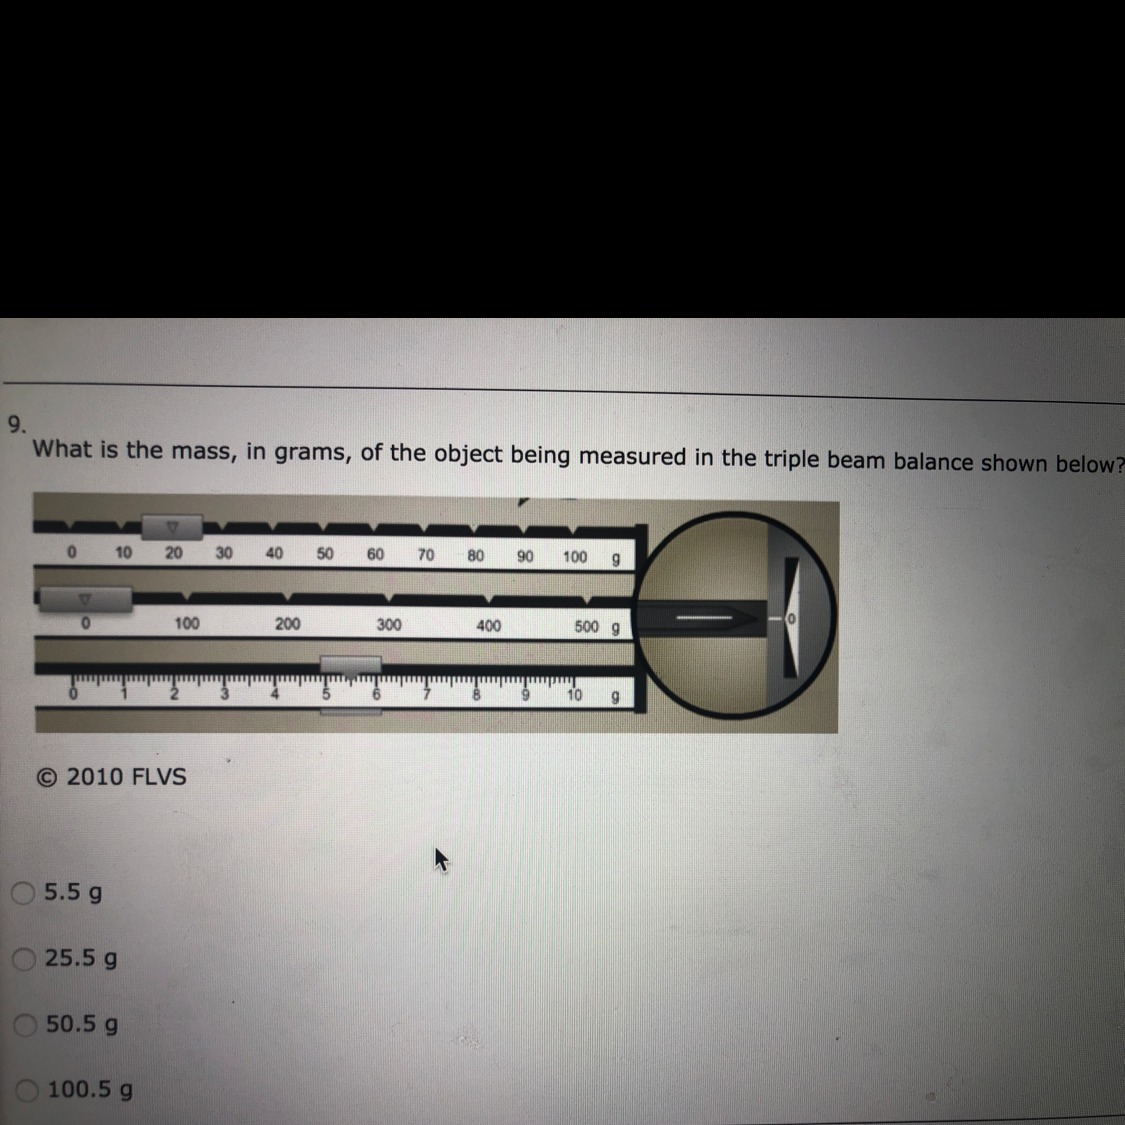 What Is The Mass In Grams Of The Object Being Measured